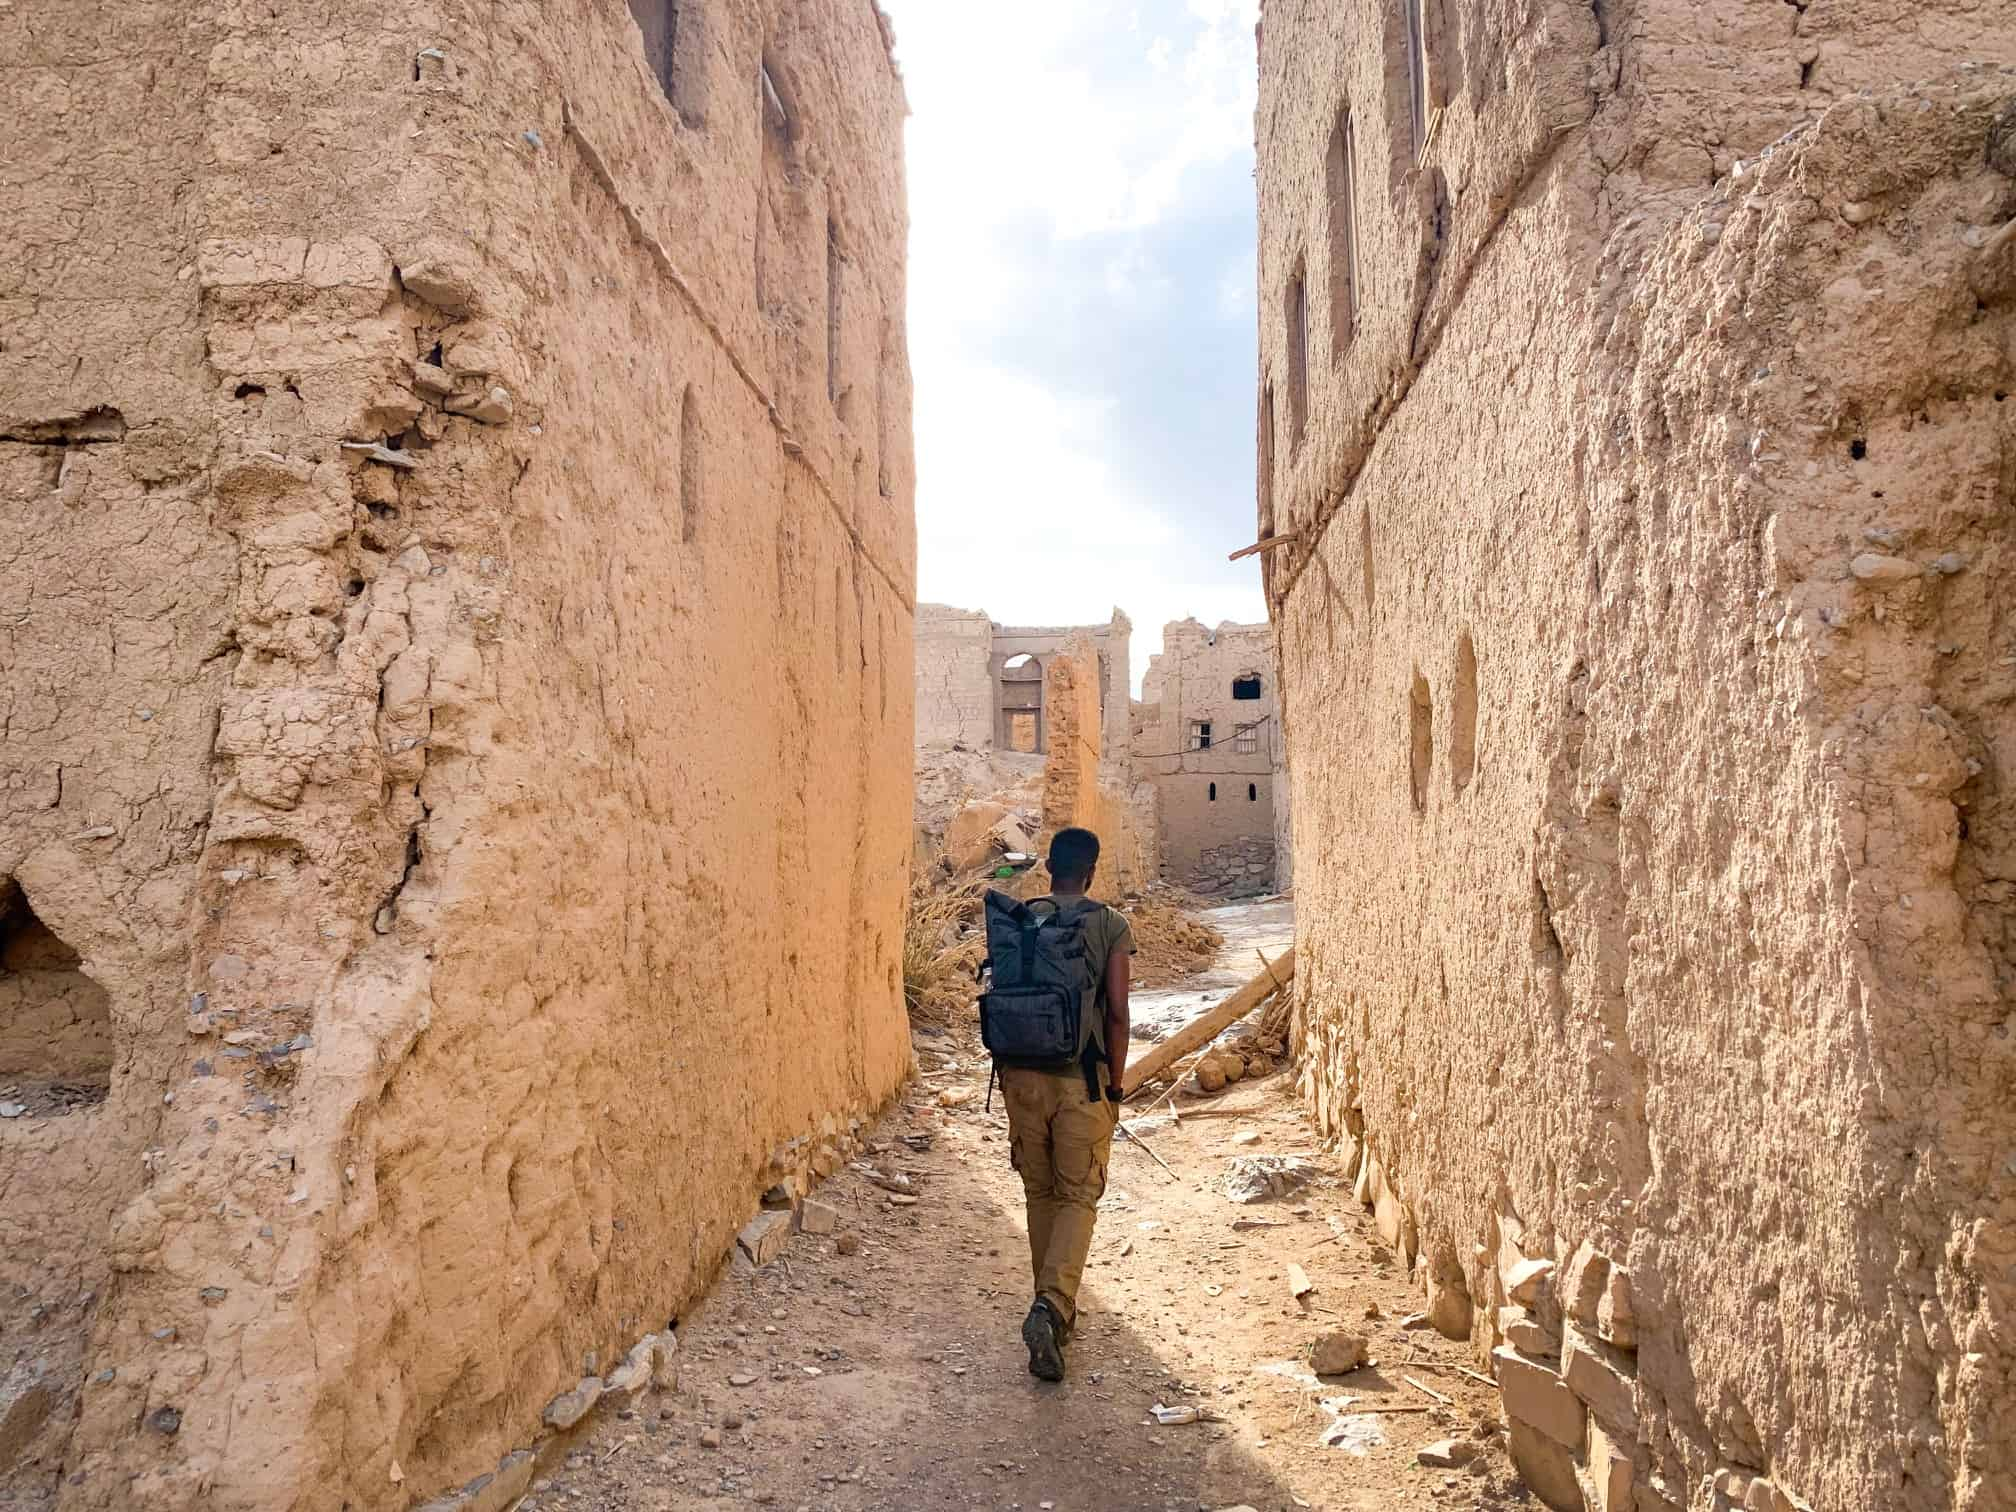 Exploring the Al Hamra Ruins on foot in Oman